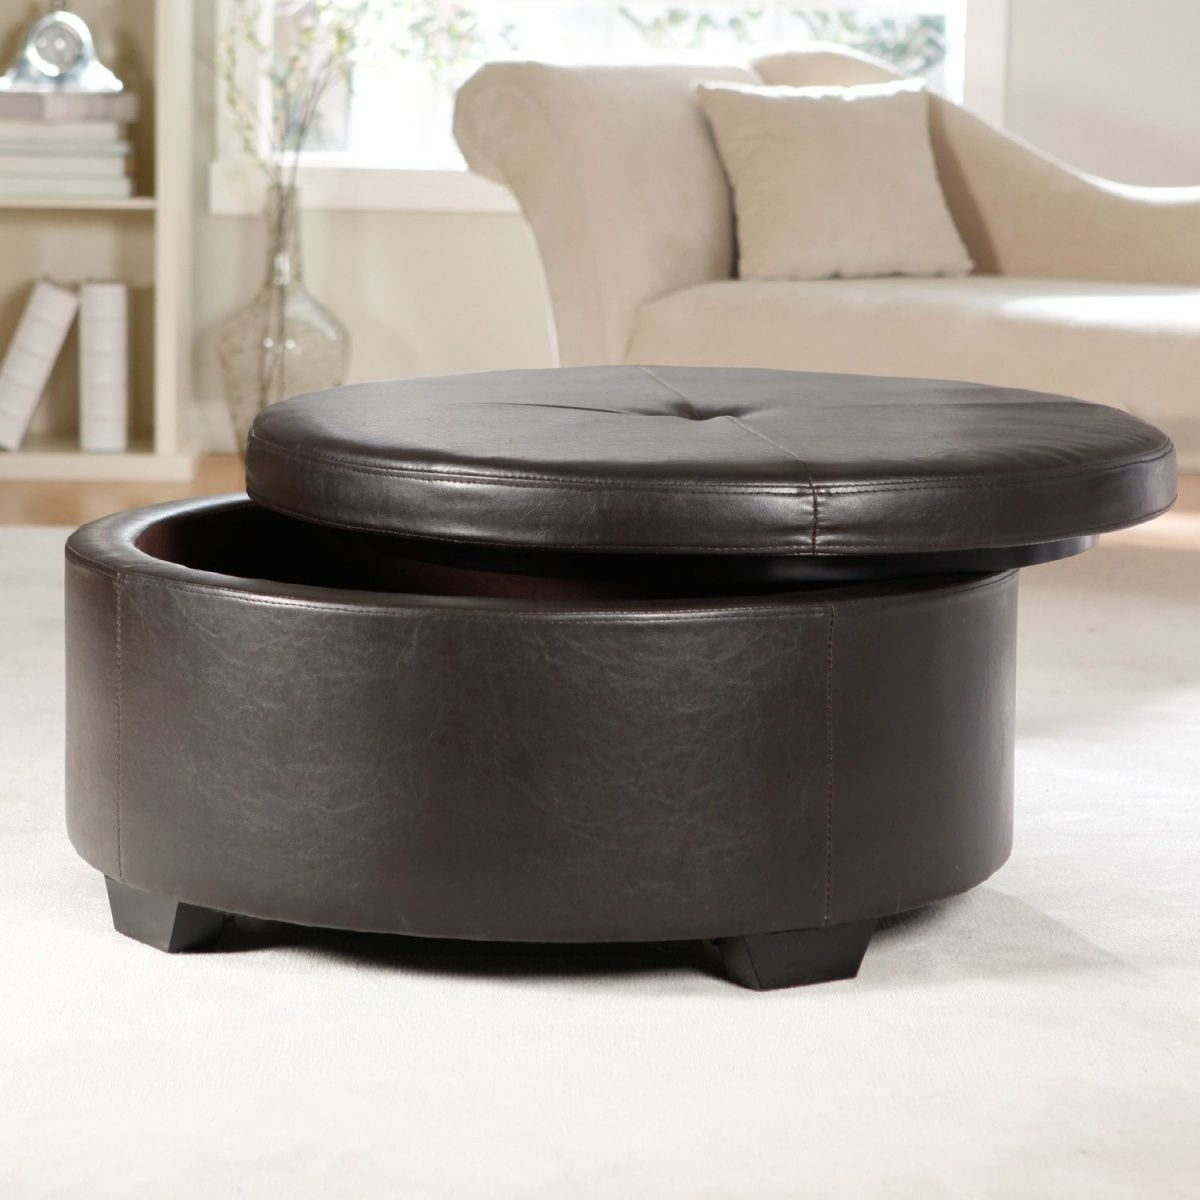 Leather Ottoman Coffee Table - http://www.kcups.info/leather-ottoman ...